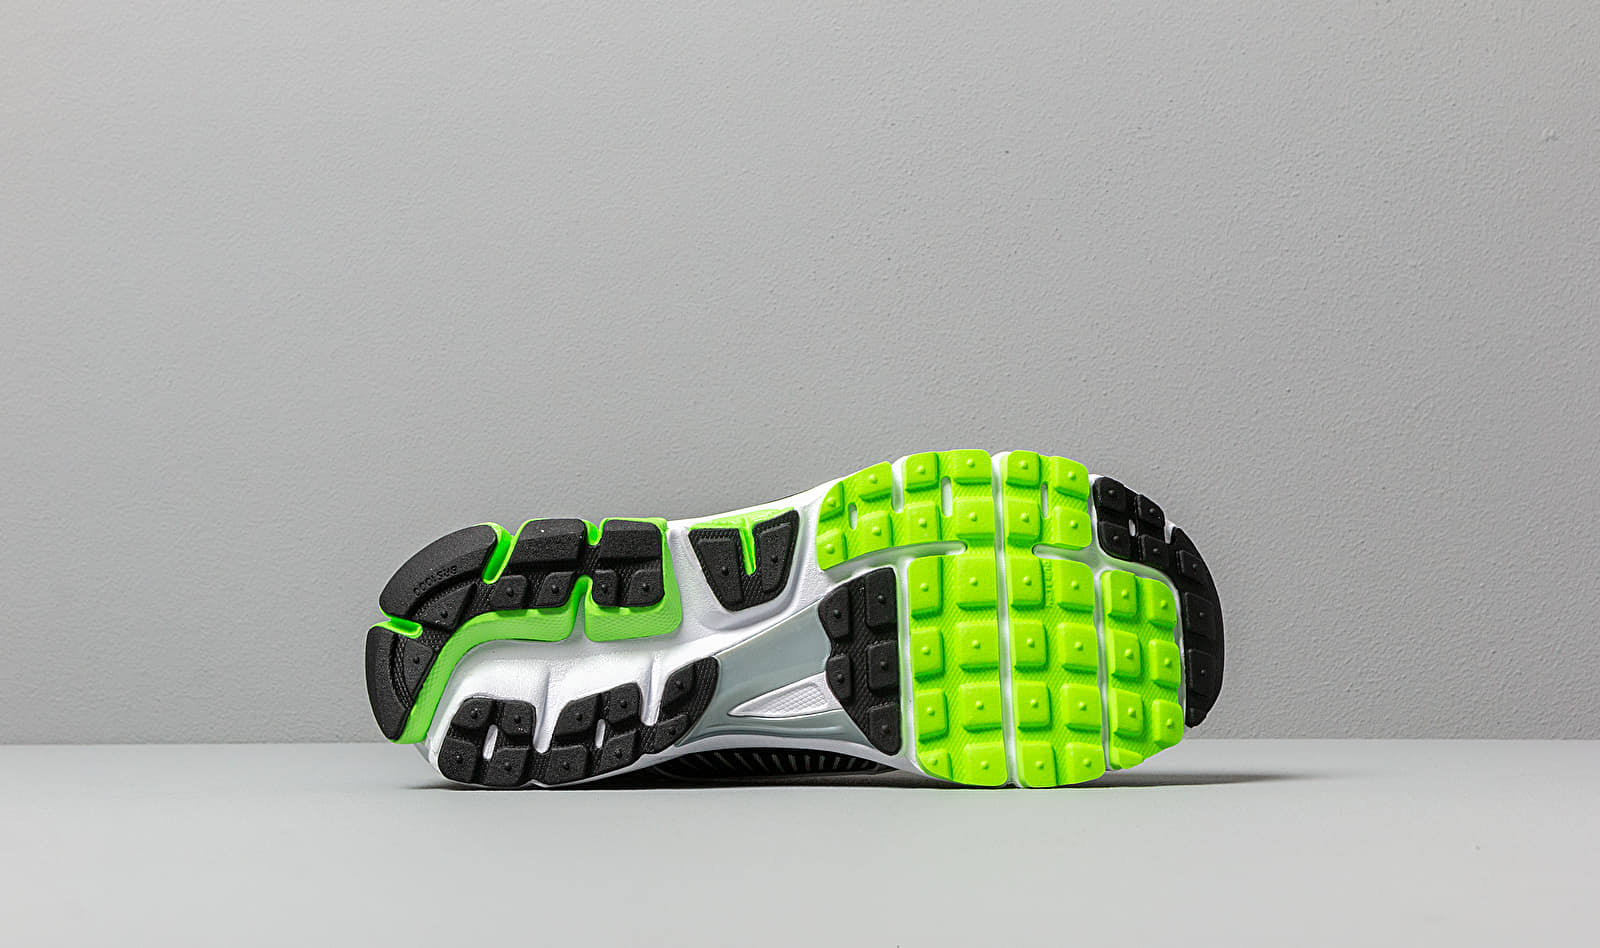 Nike Zoom Vomero 5 Electric Green Black